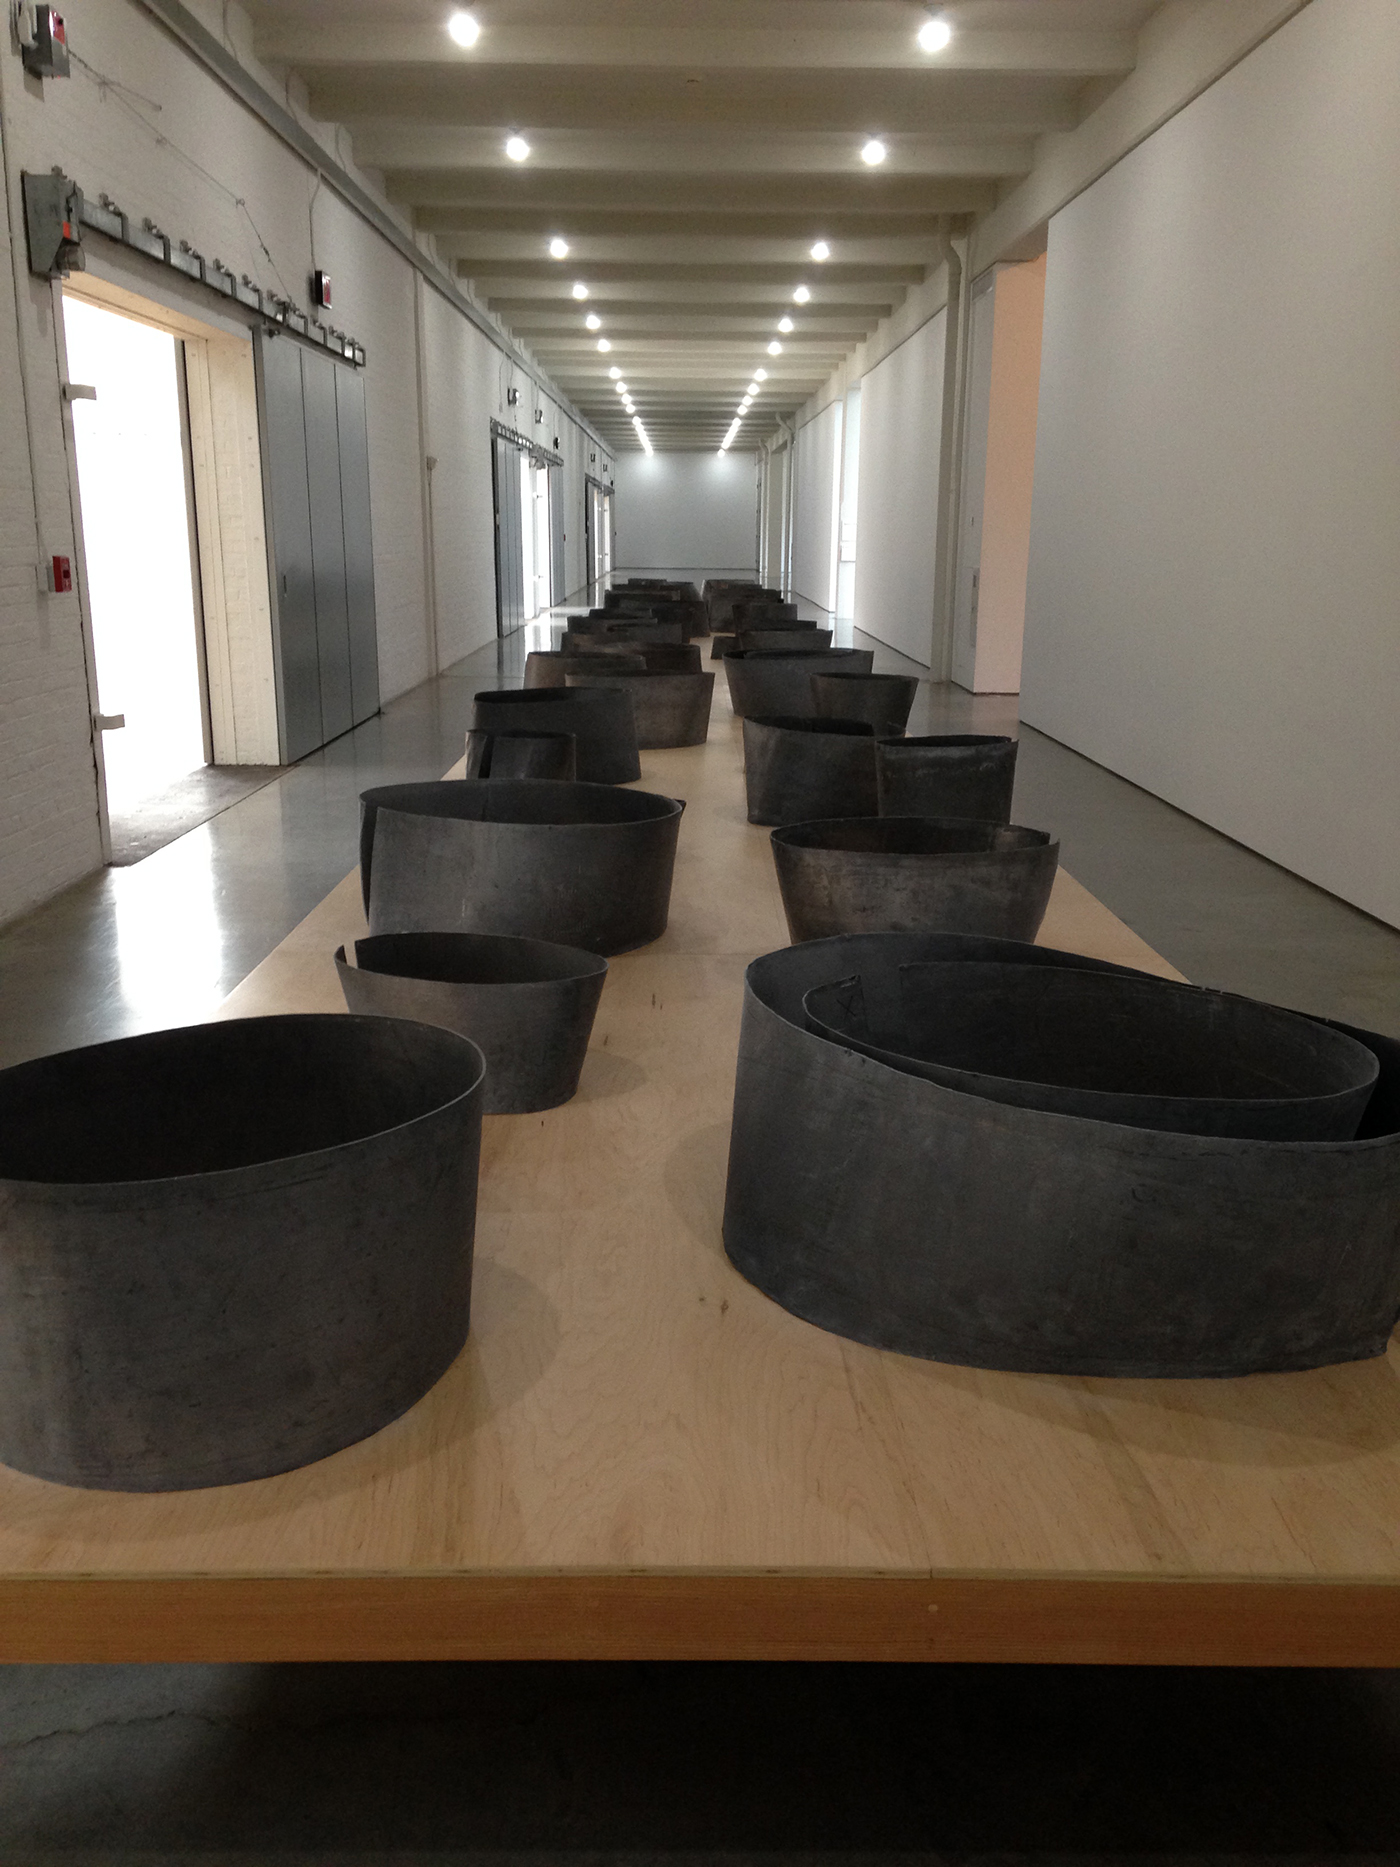 Contemplating Perfection and Imperfection at Dia:Beacon